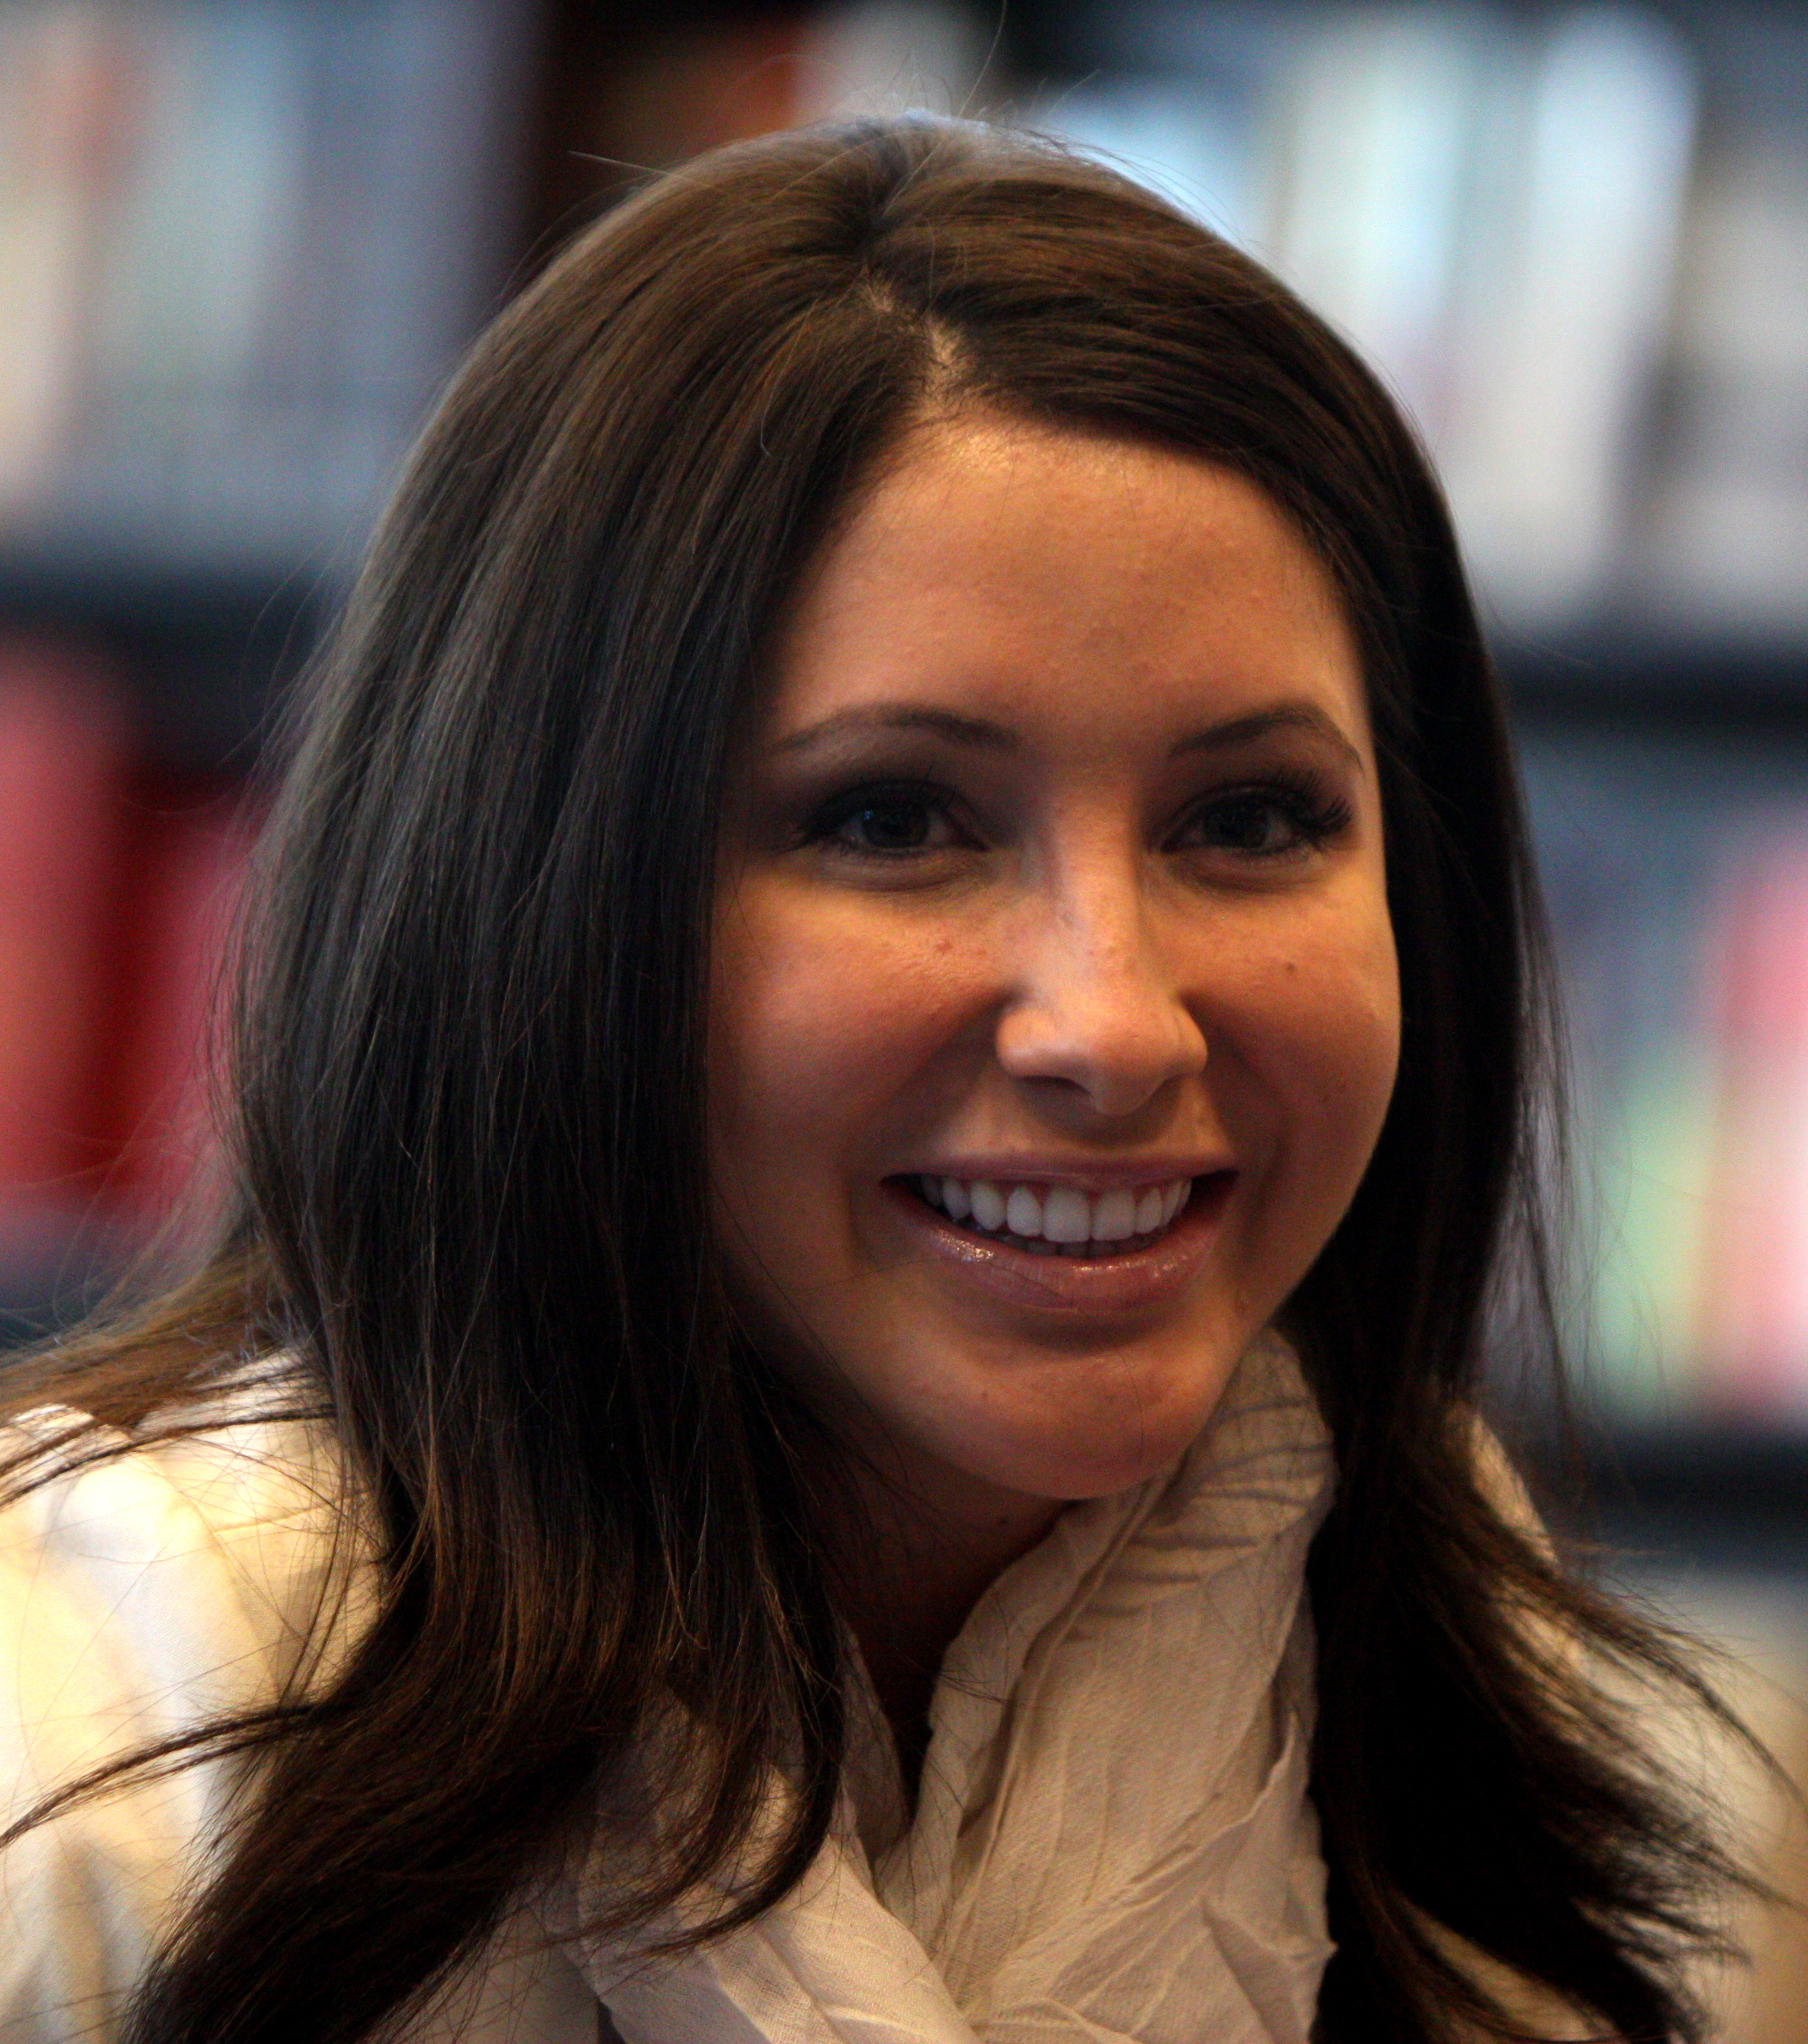 Bristol Palin - Wikipedia, the free encyclopedia